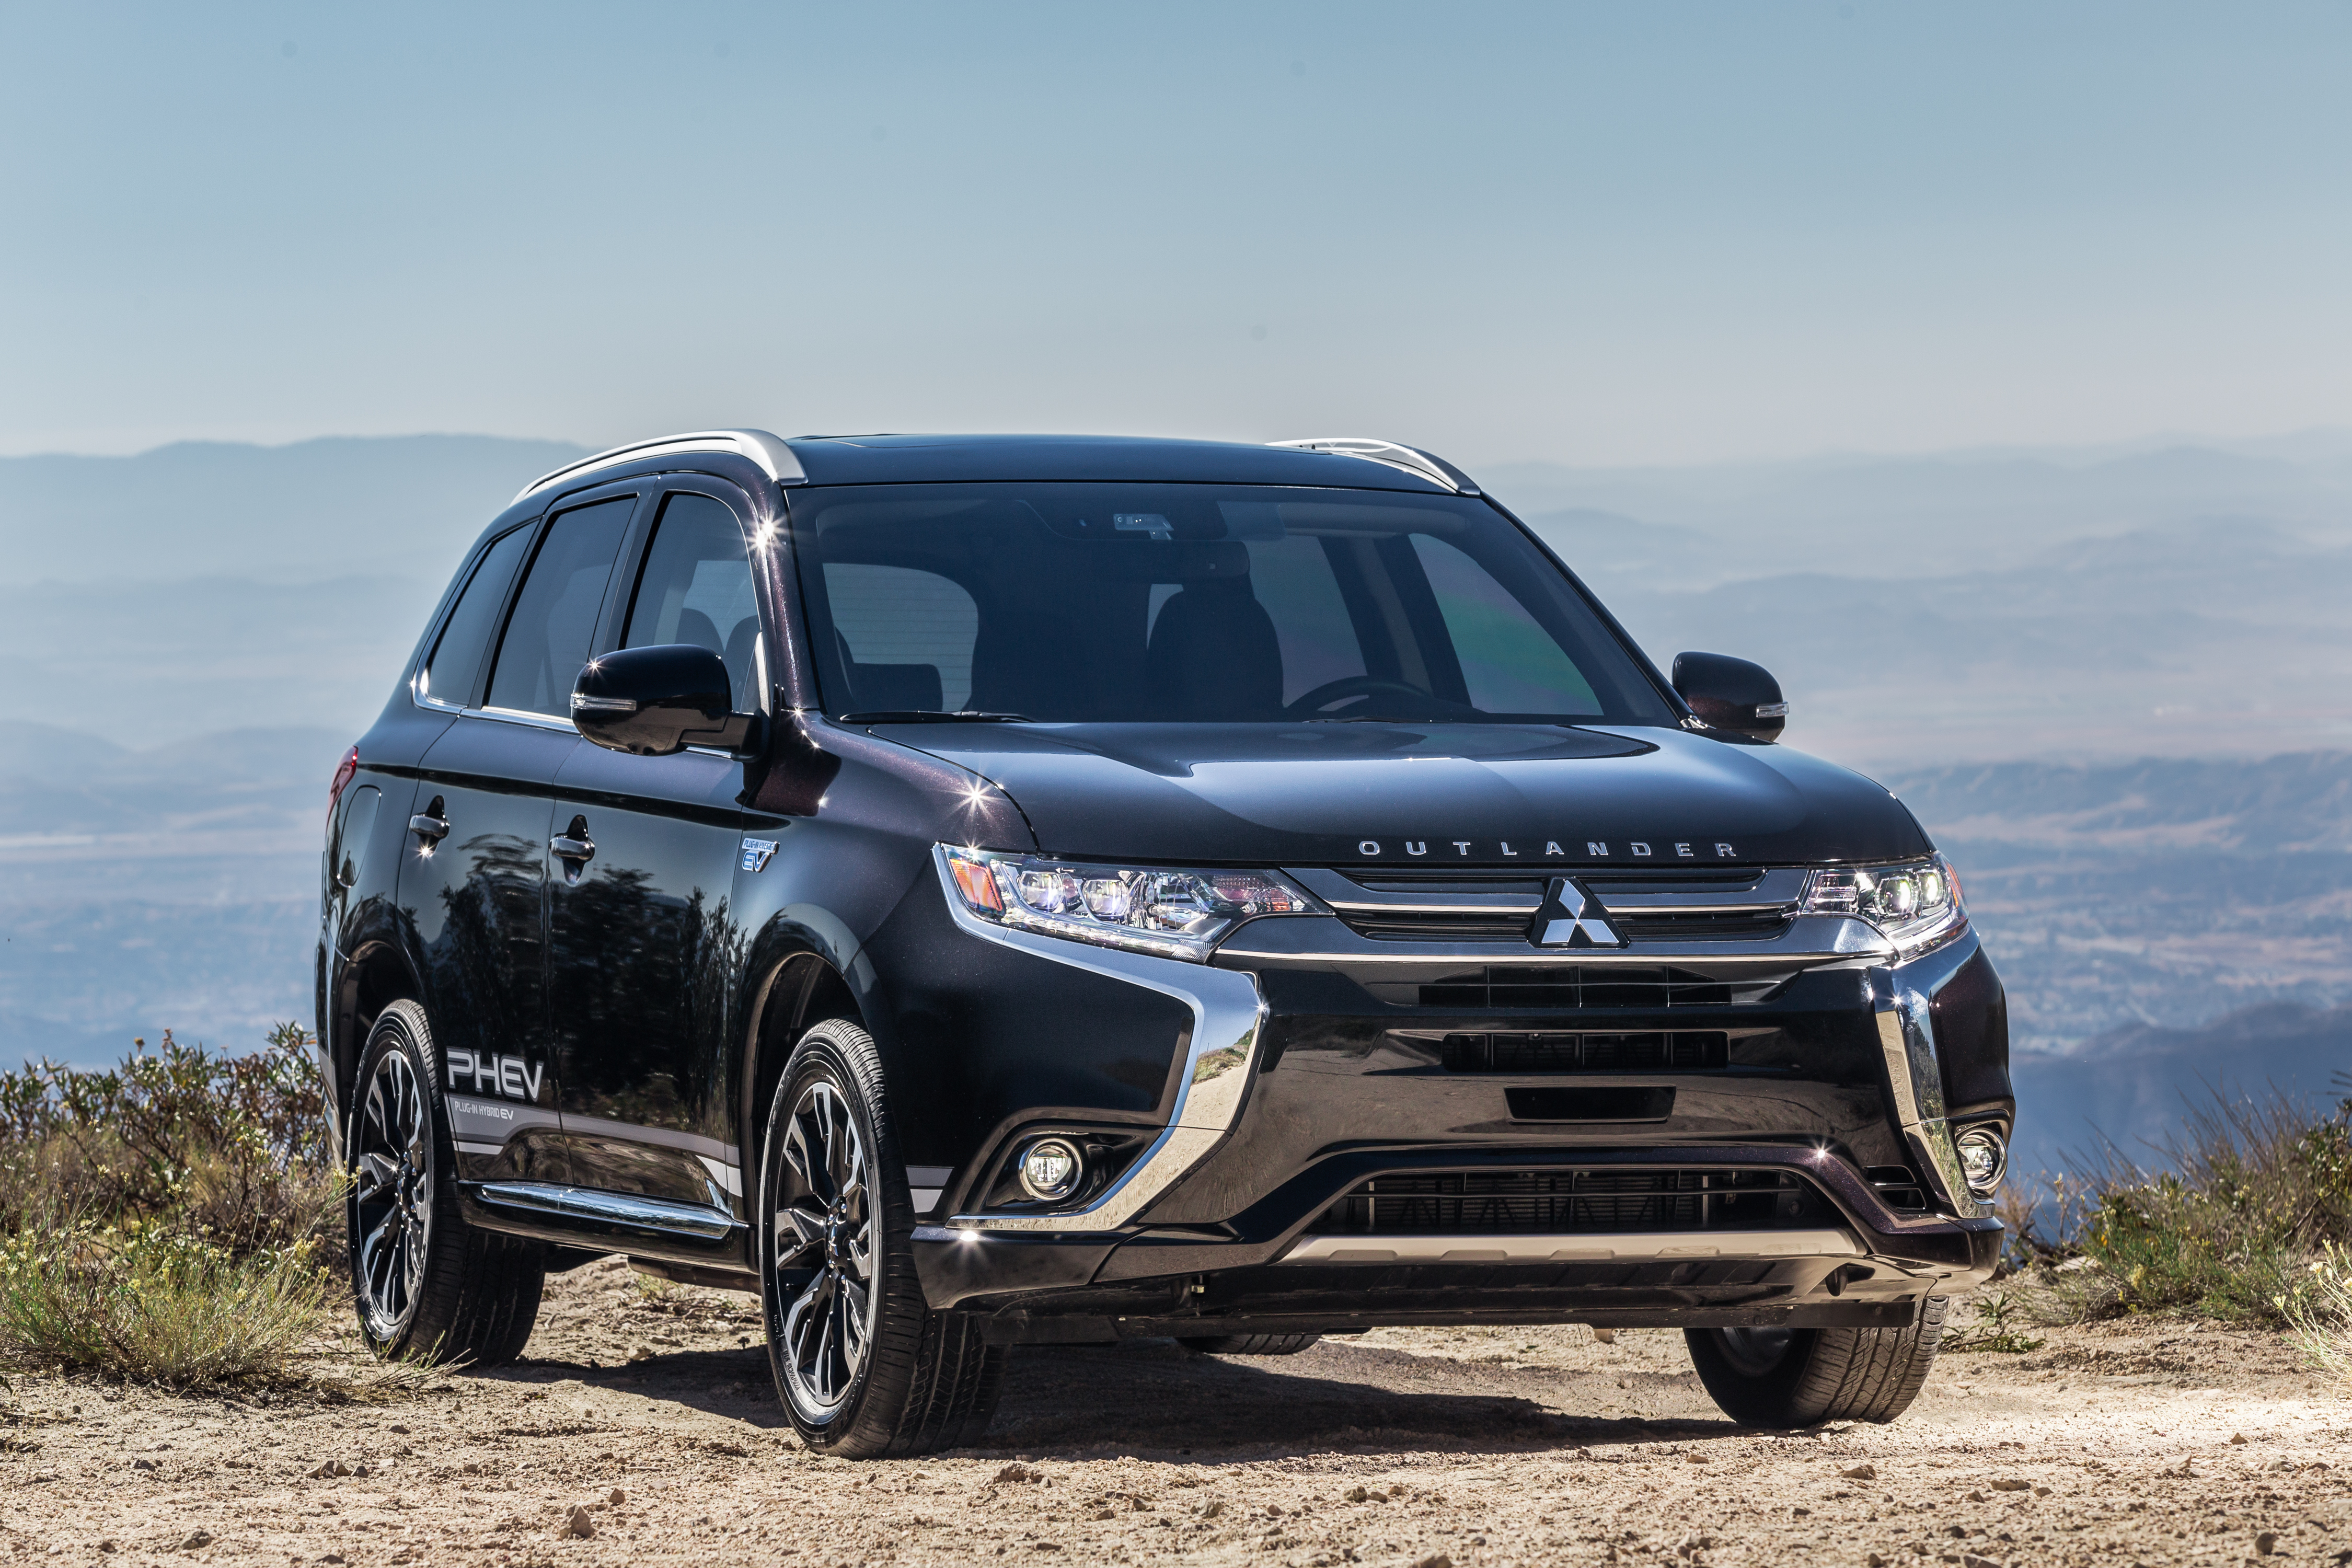 Mitsubishi Outlander Phev Named Green Car Journal U2019s 2019